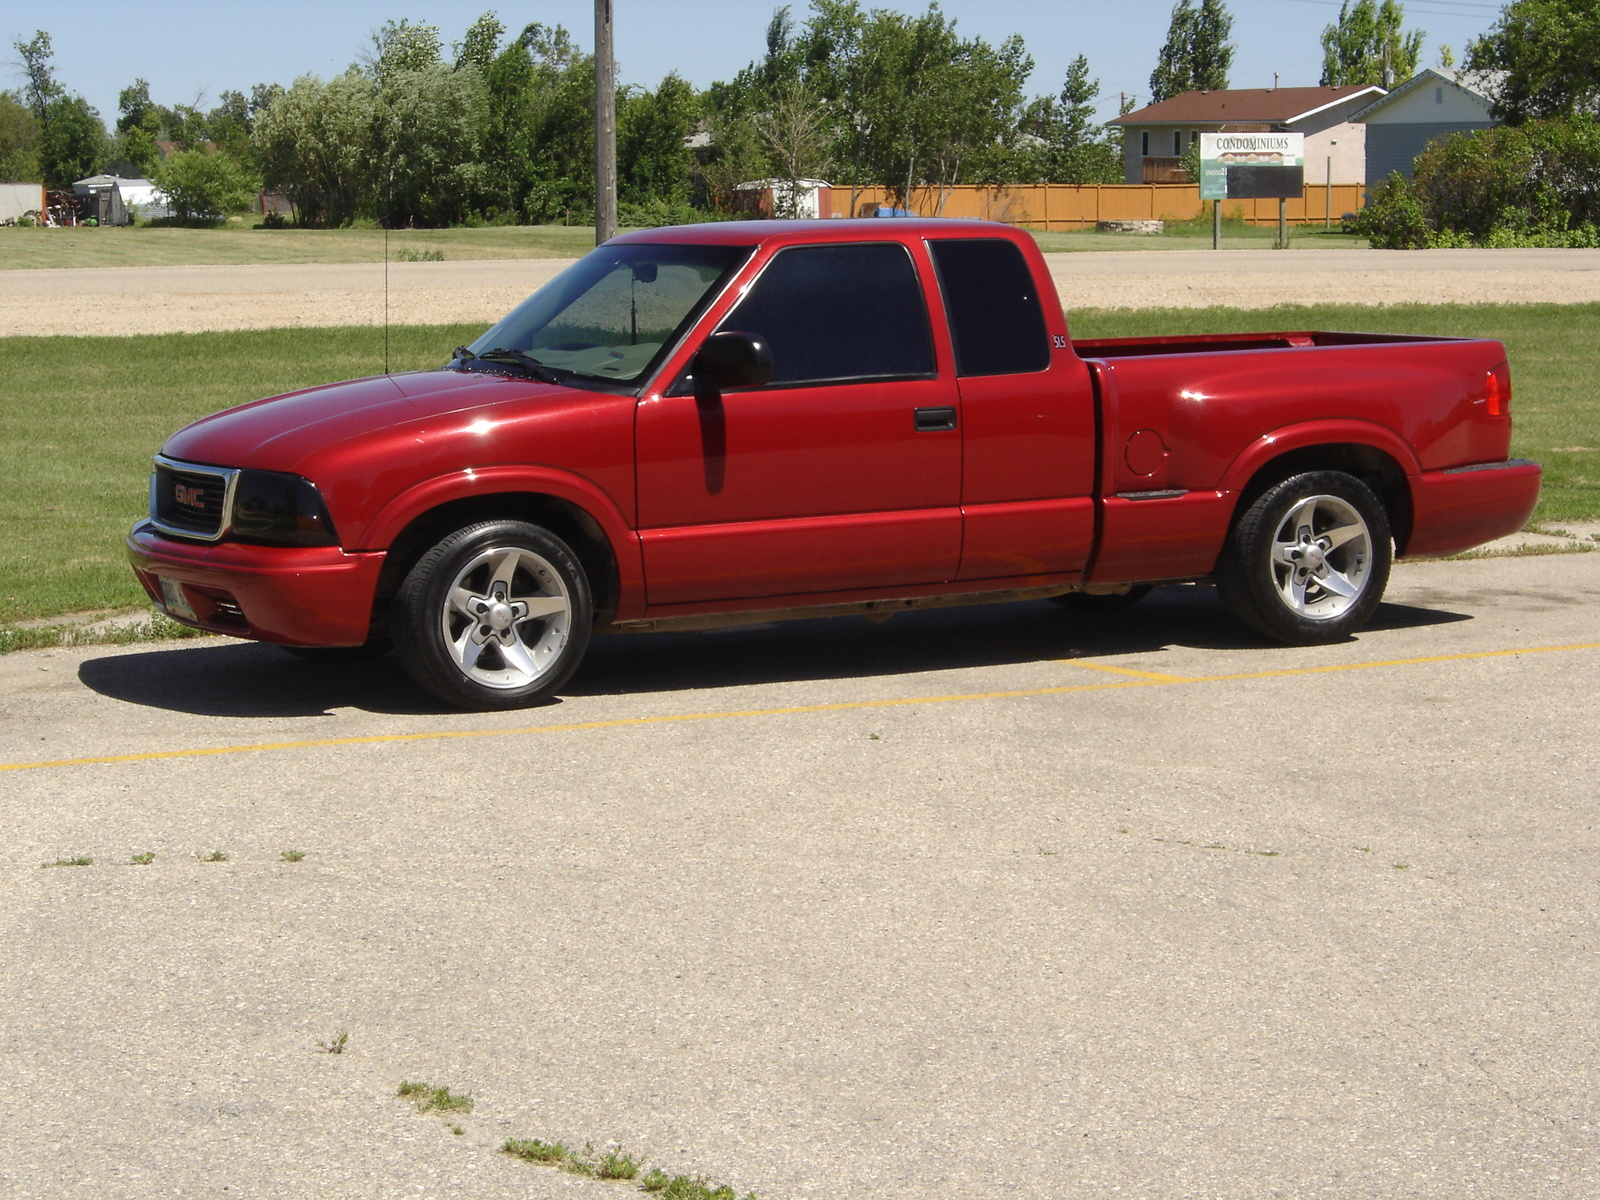 Gmc Sonoma 1993 Review Amazing Pictures And Images Look At The Car 2000 Ford Ranger Lifted Photo 2